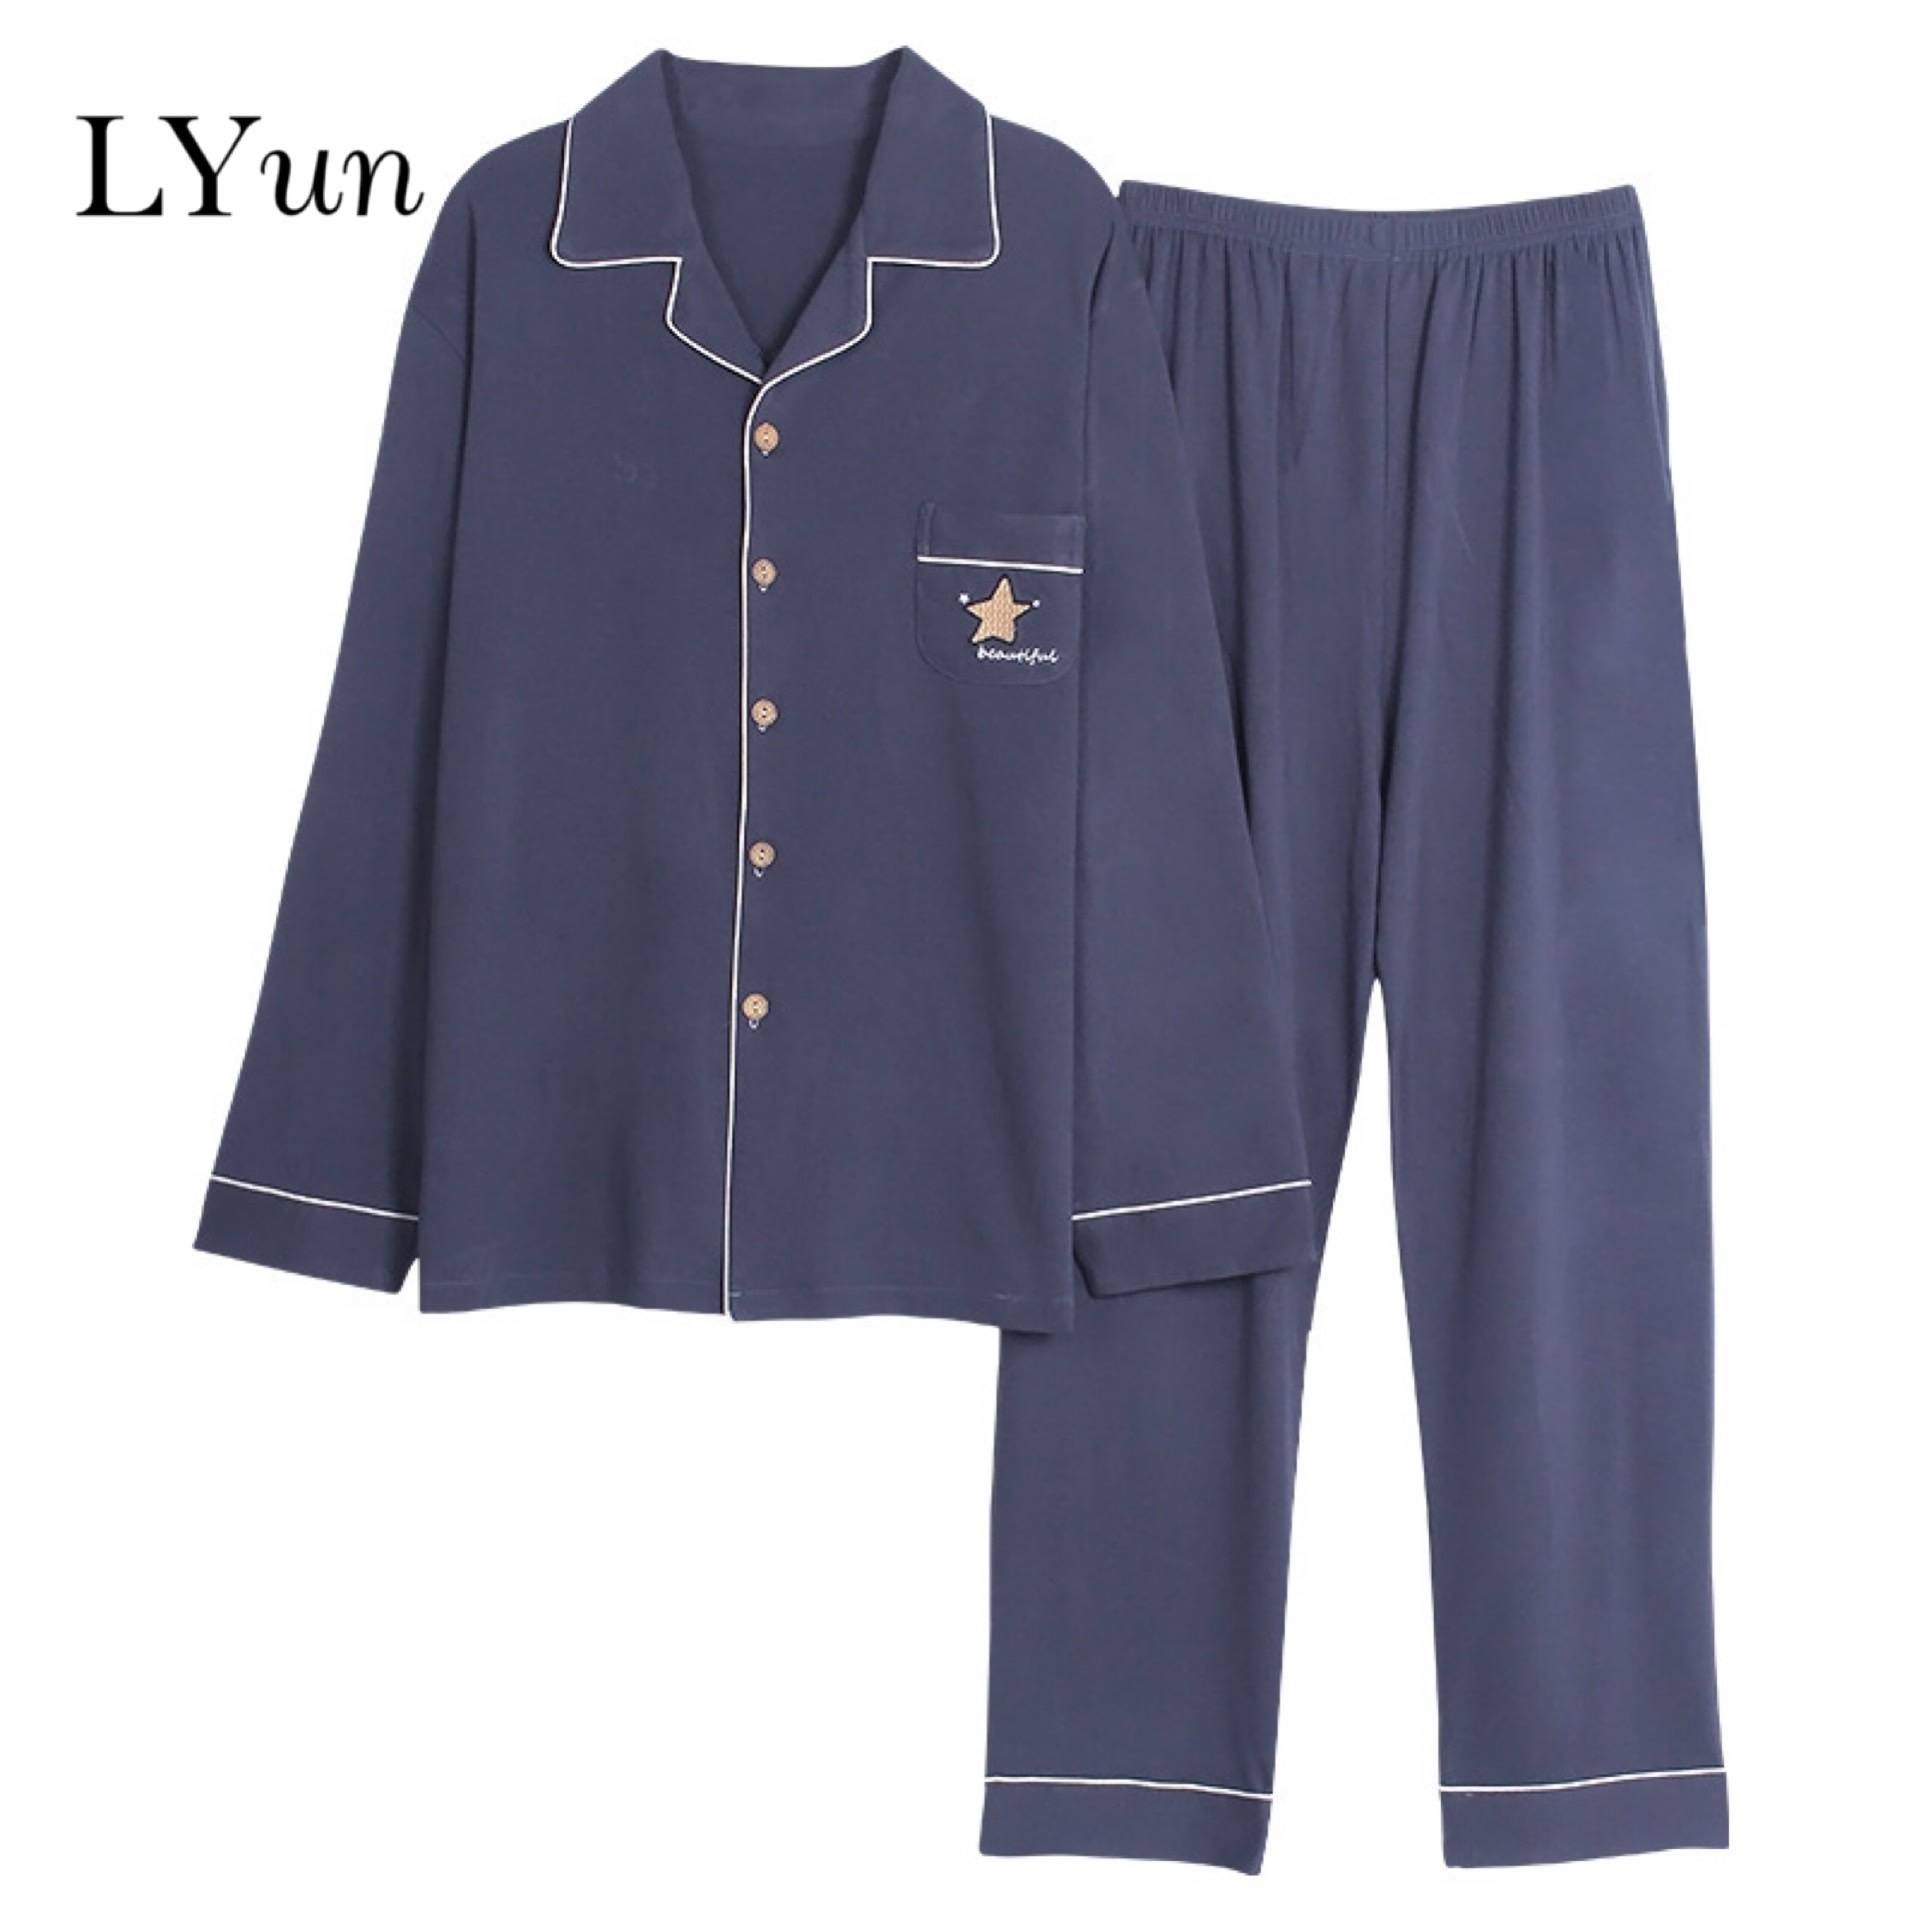 LYun Pajamas Men's Cotton Spring And Autumn Youth Men's Winter Long-sleeved Large Size Cotton Korean Casual Home Service Suit